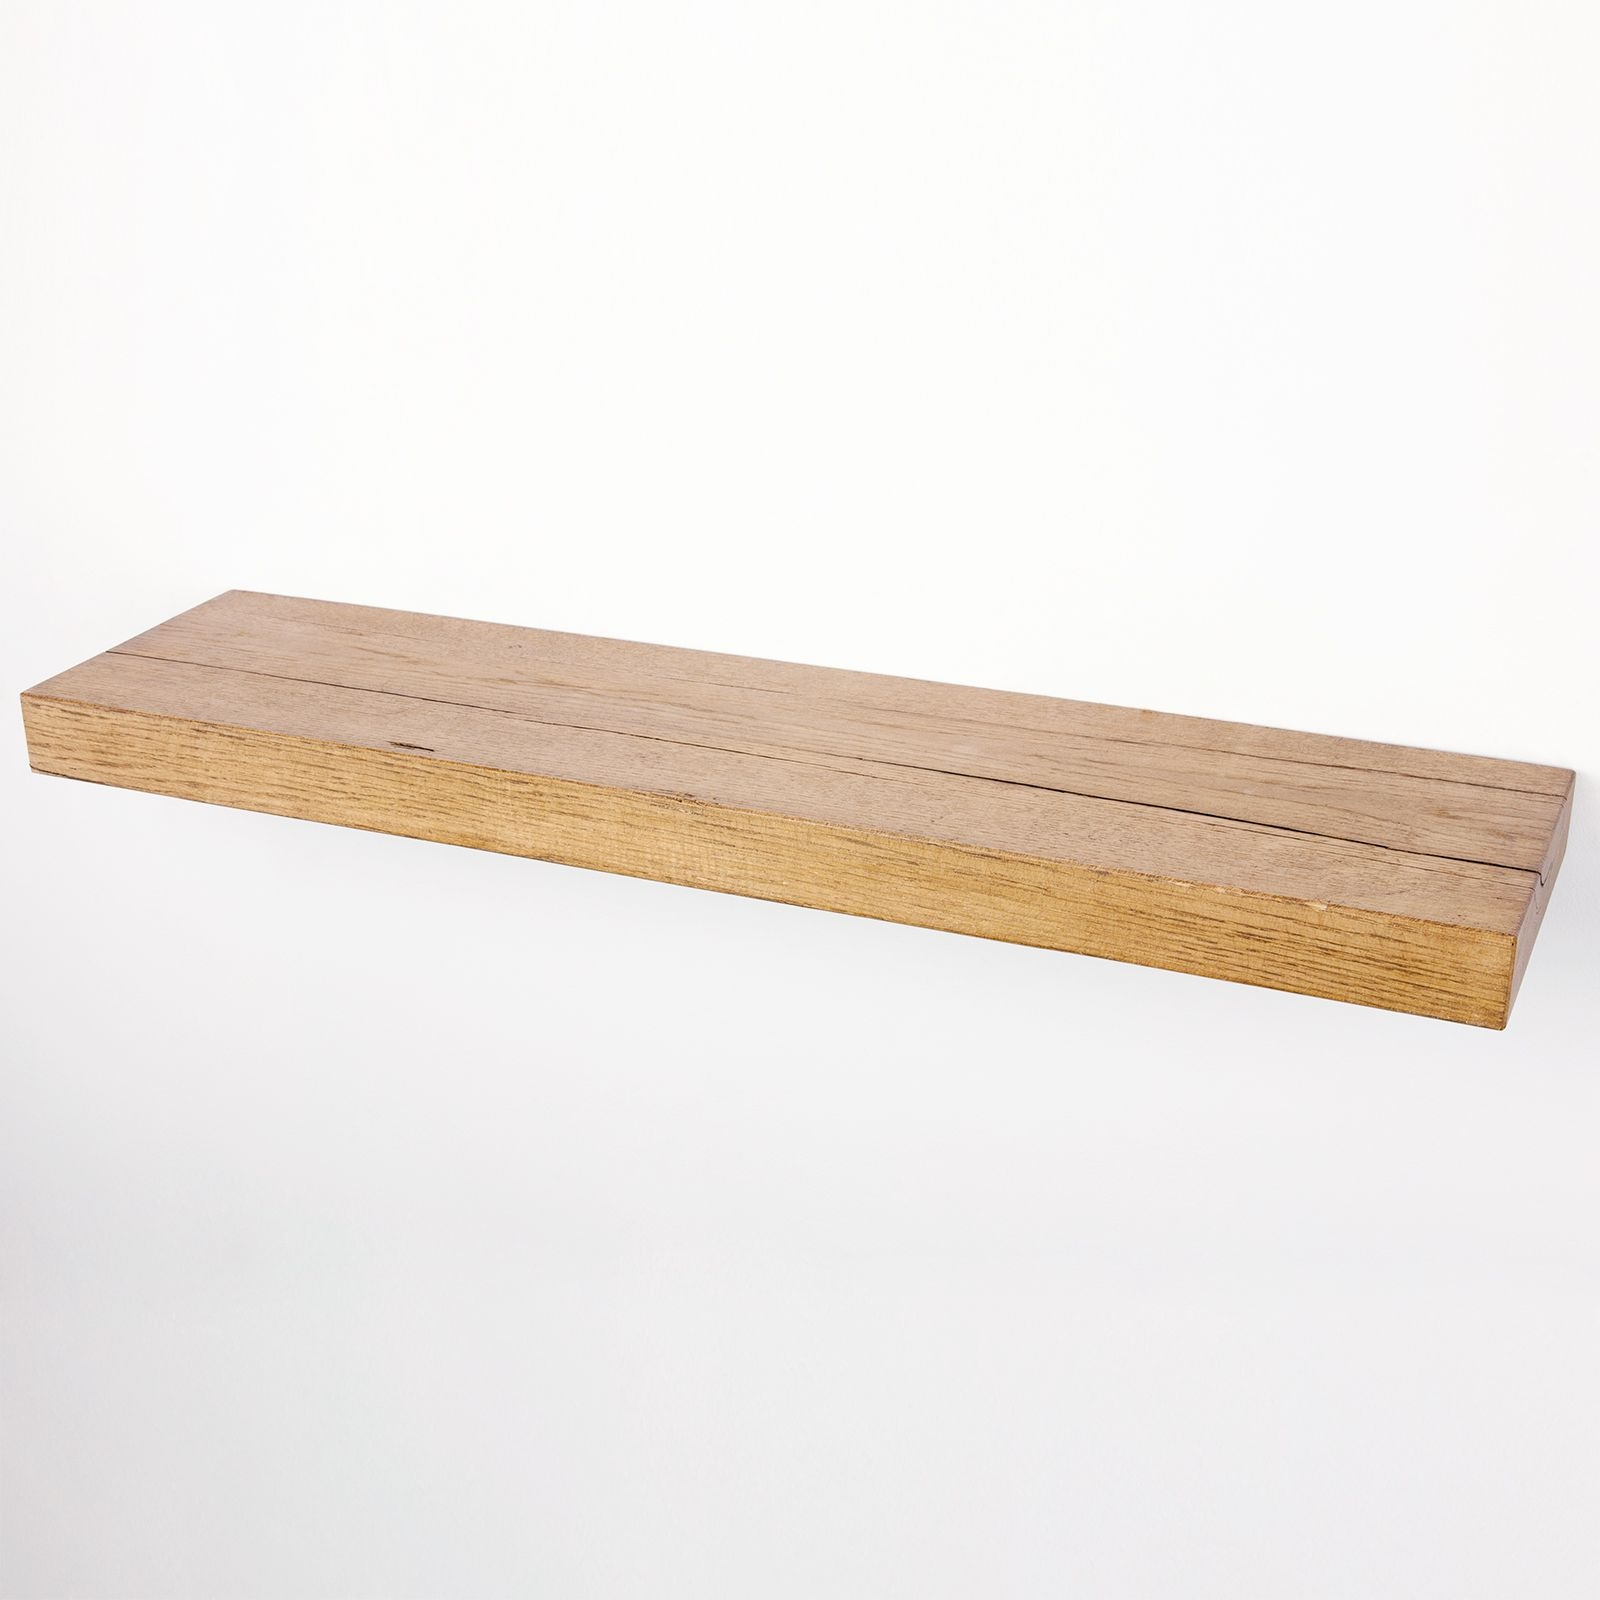 Floating Shelf 8×2 Solid Oak Funky Chunky Furniture Intended For Floating Shelf 100cm (Image 2 of 15)